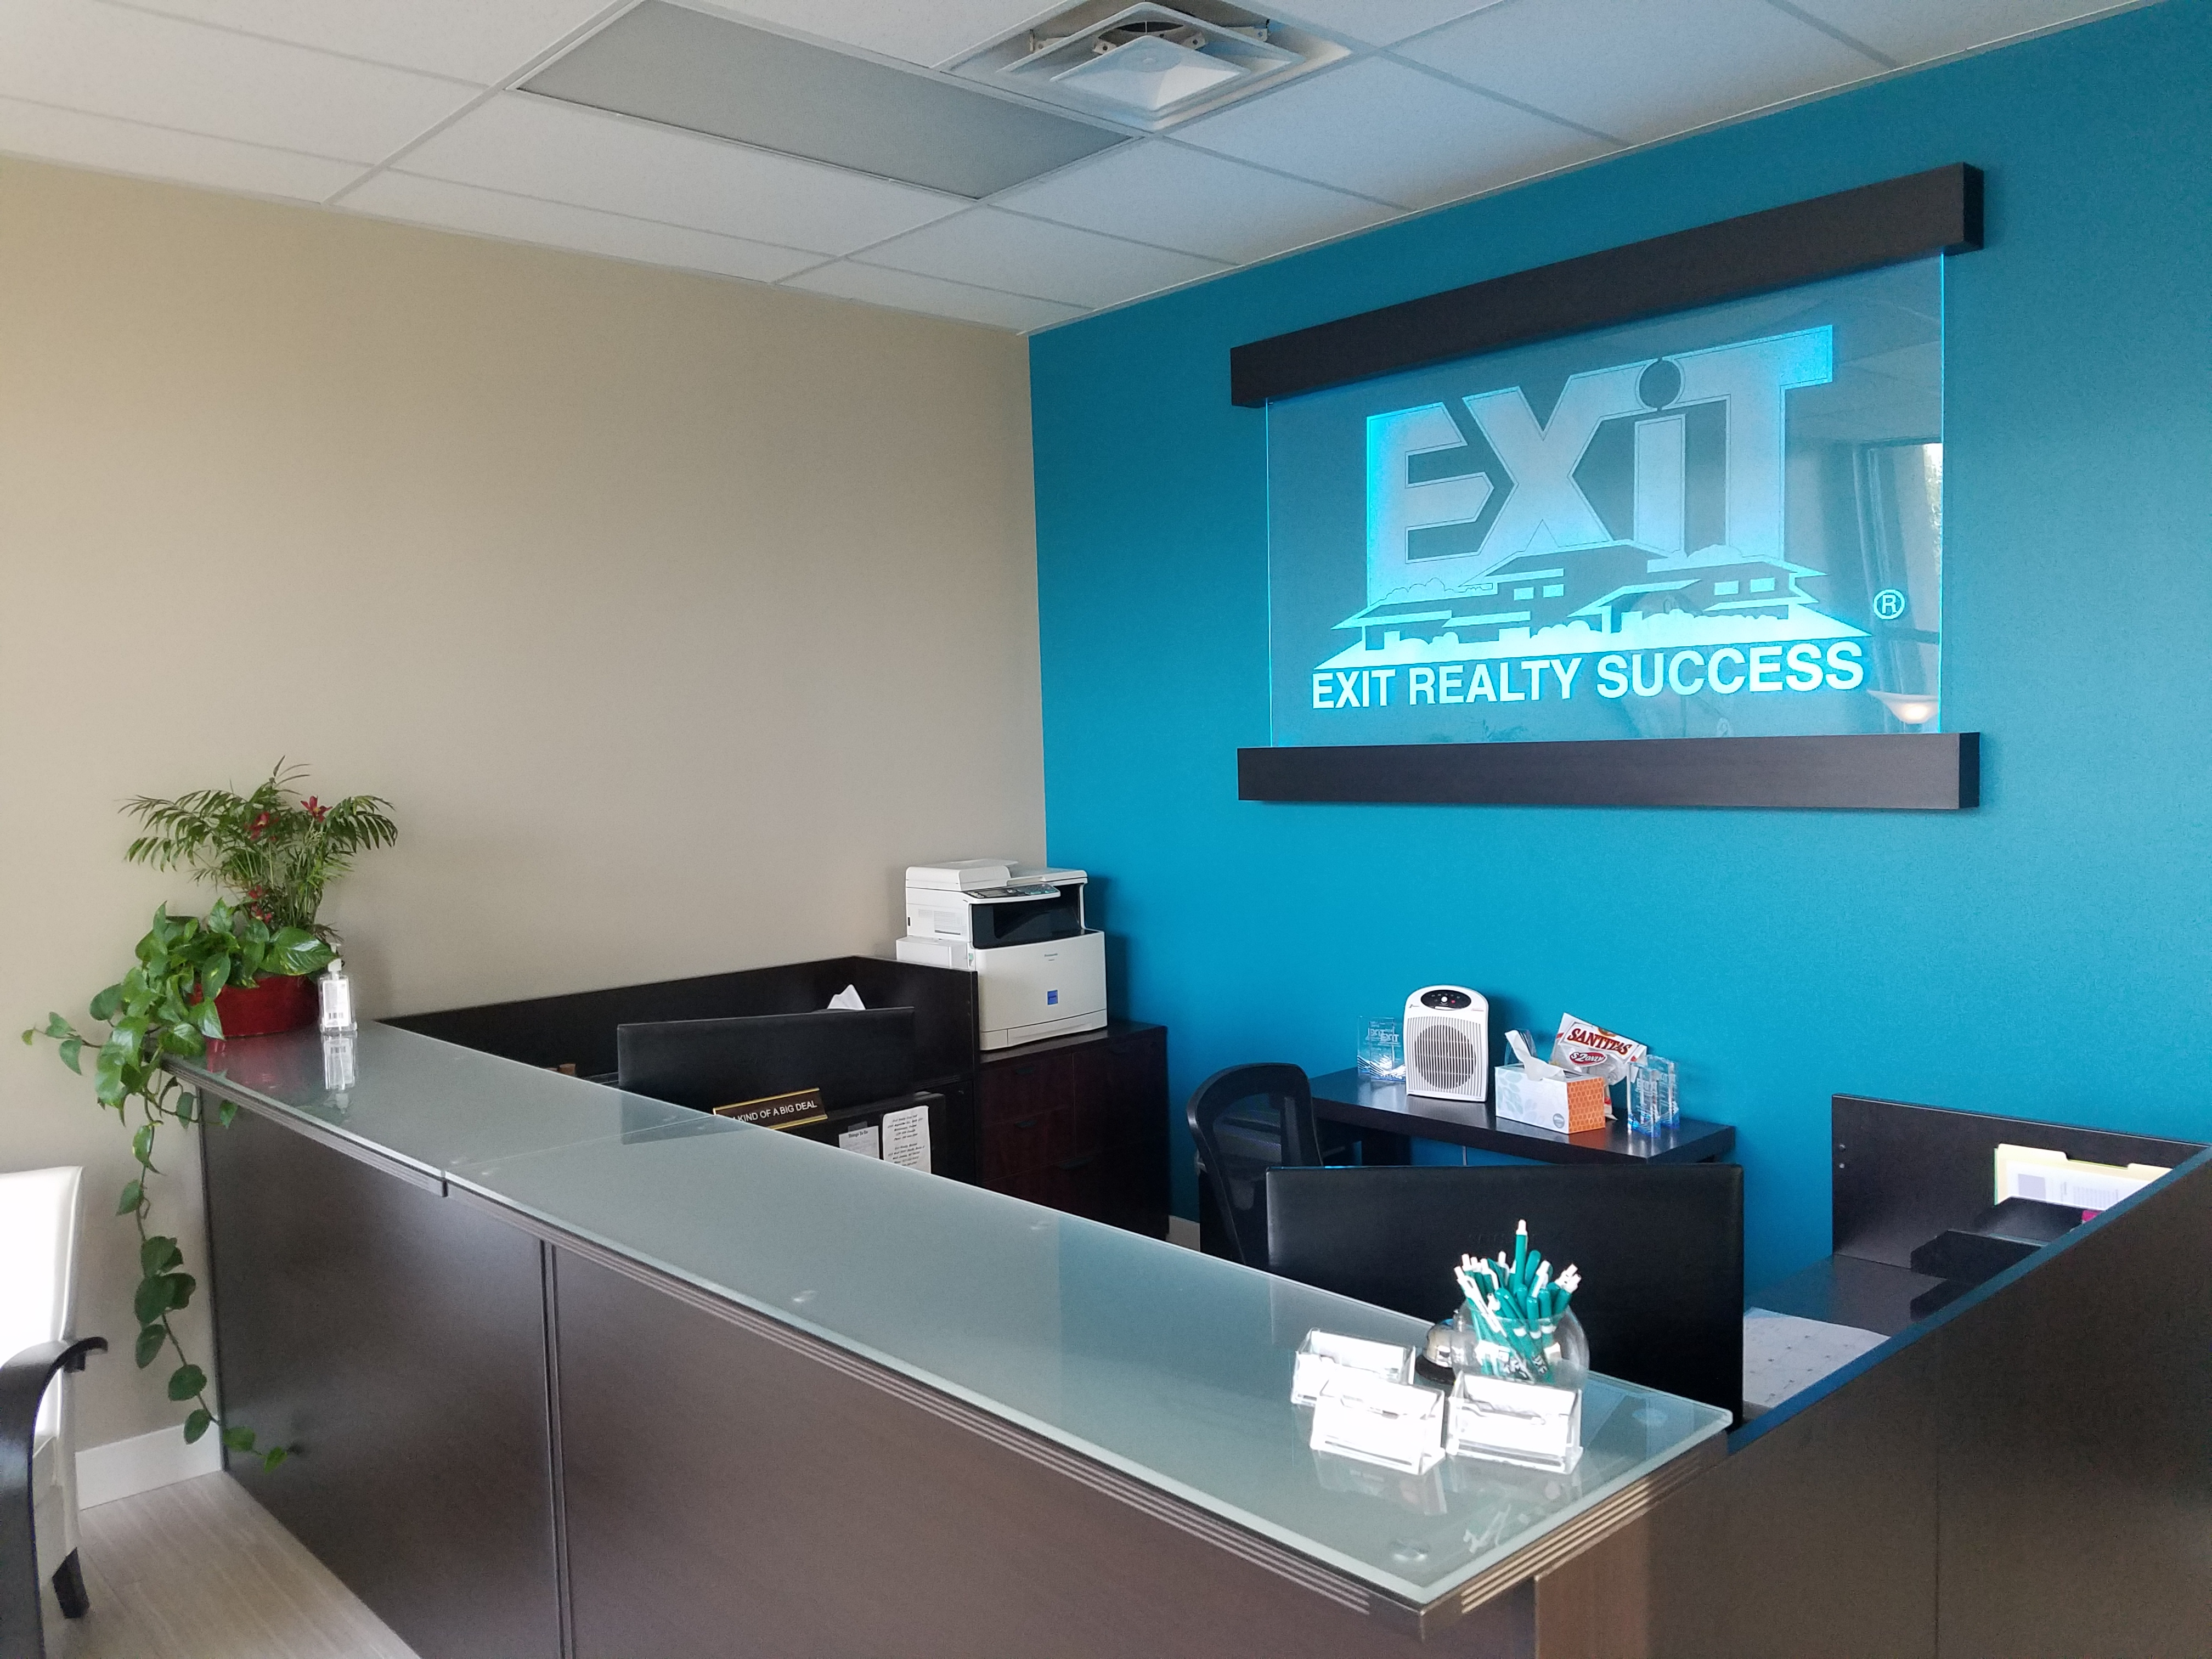 Scott Hodges Team with Exit Realty Success image 1